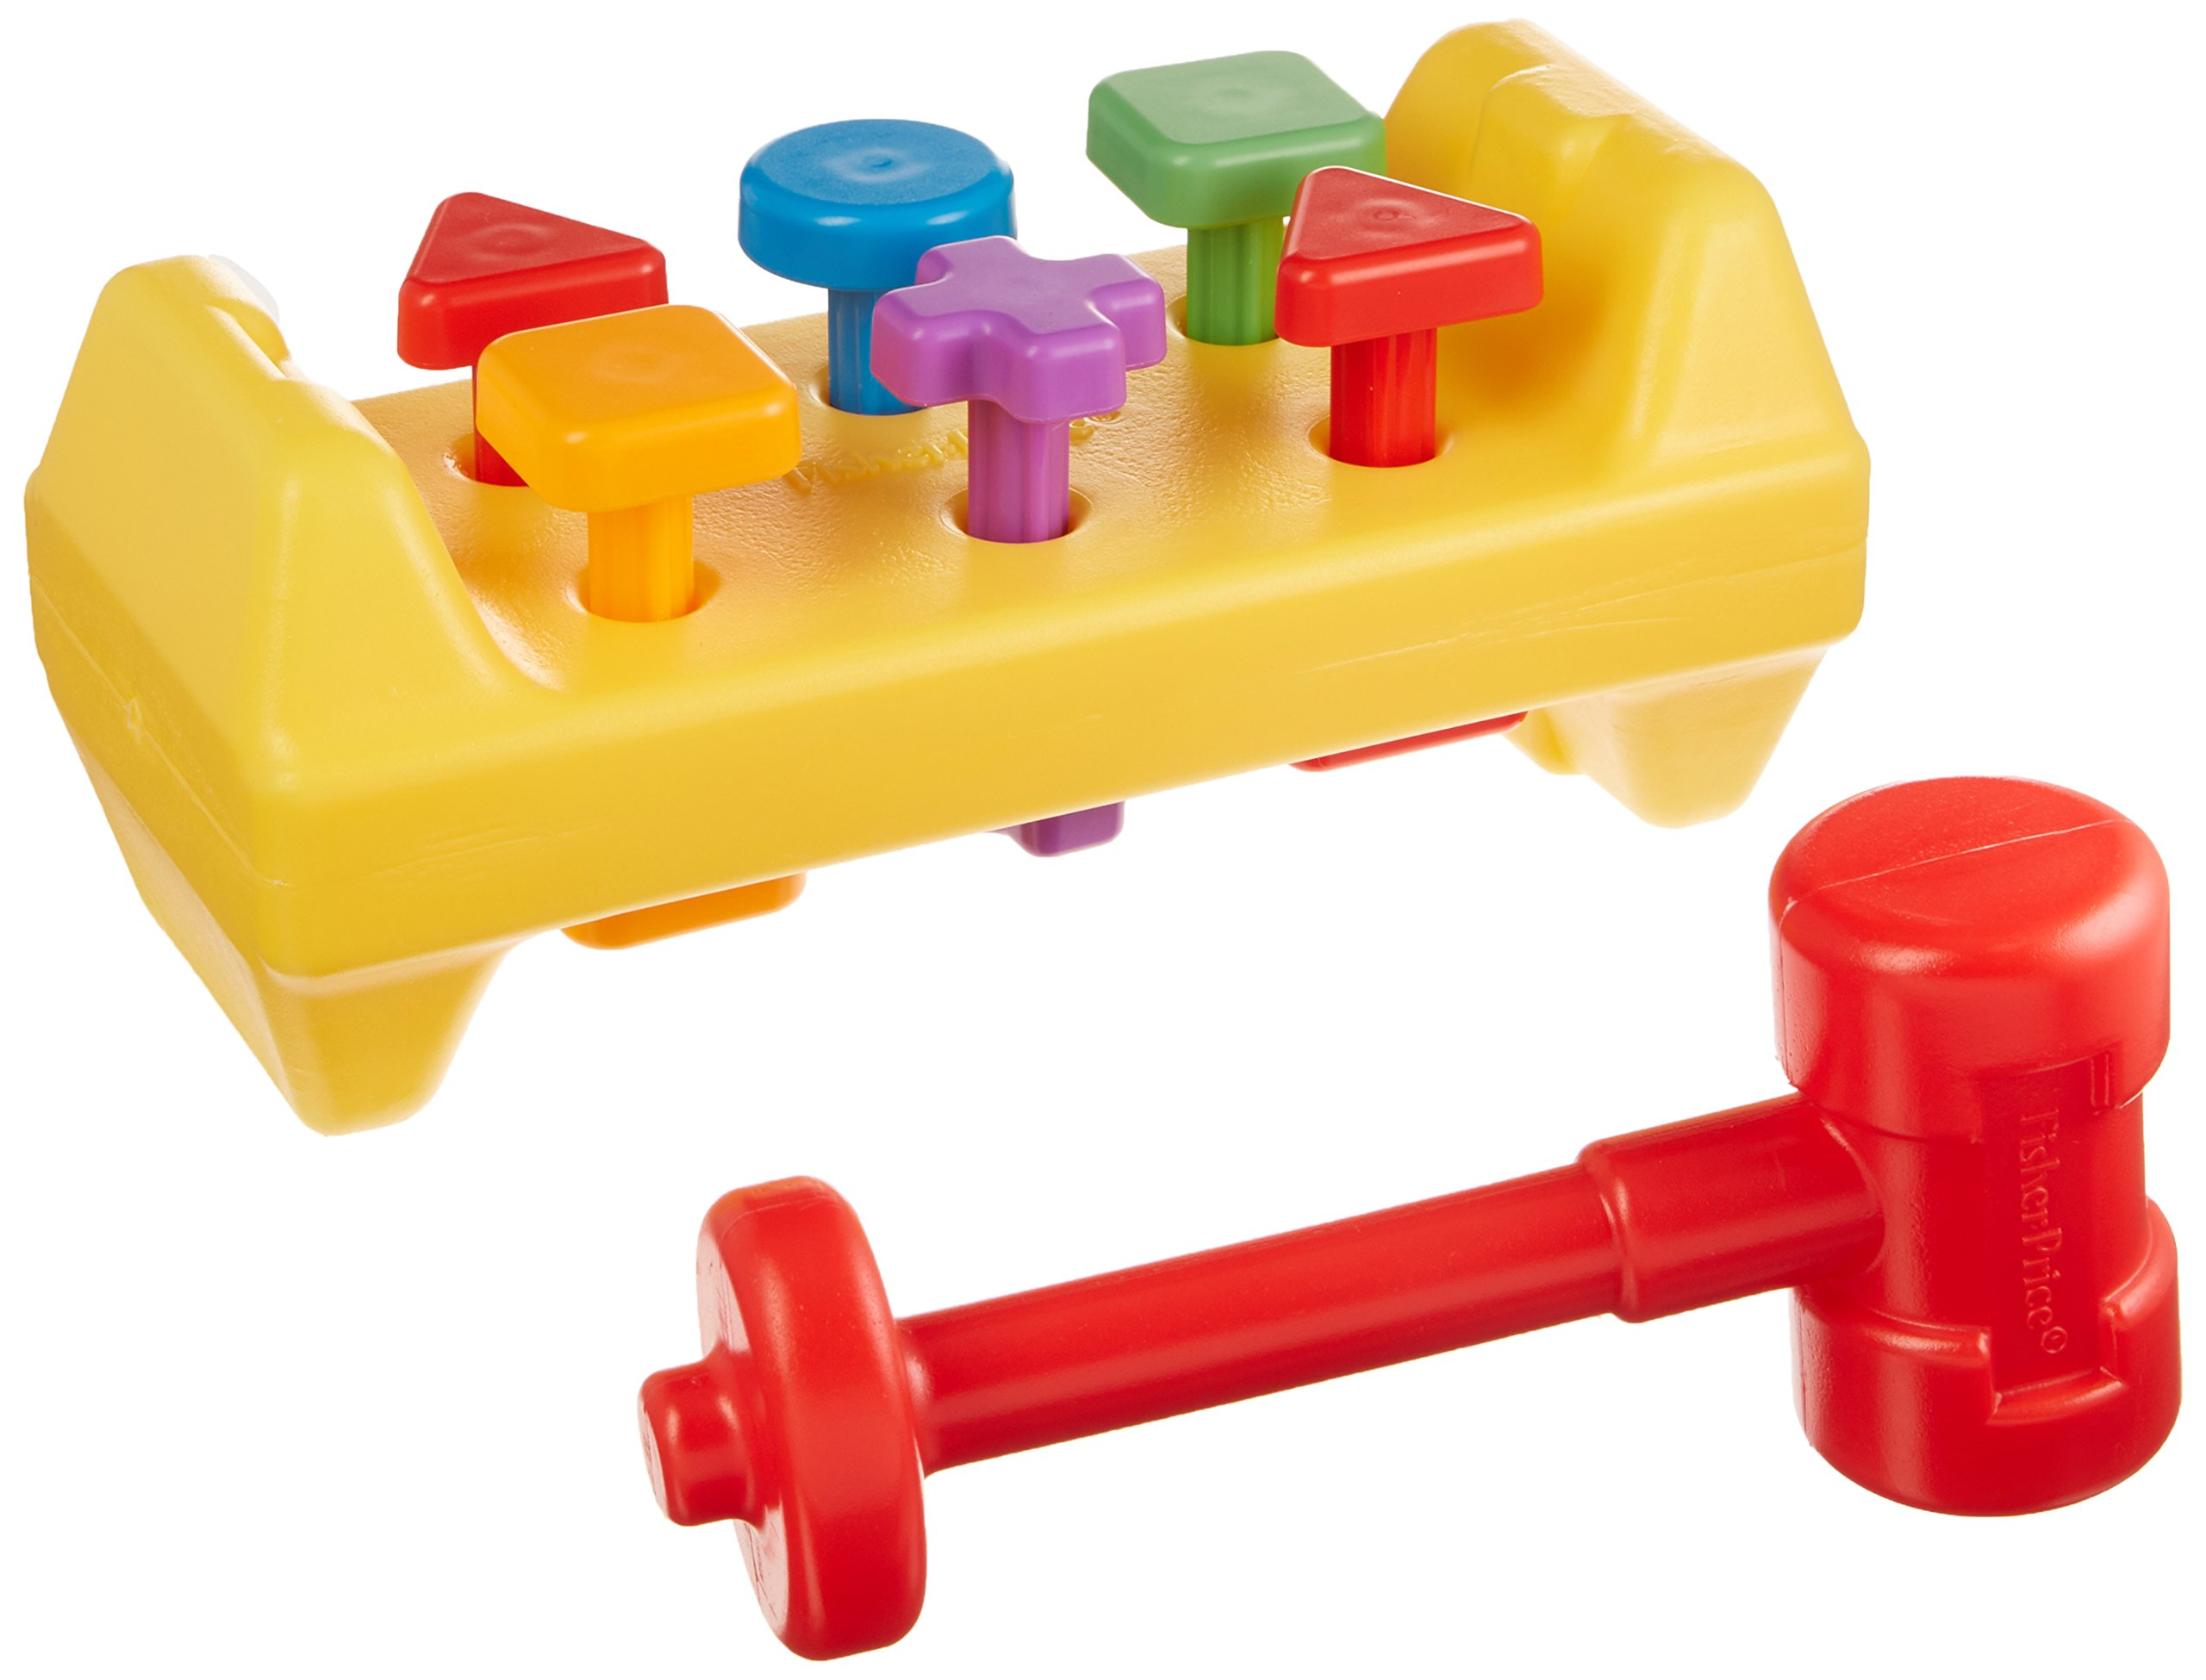 Fisher-Price Tap N' Turn Toolbench Toy